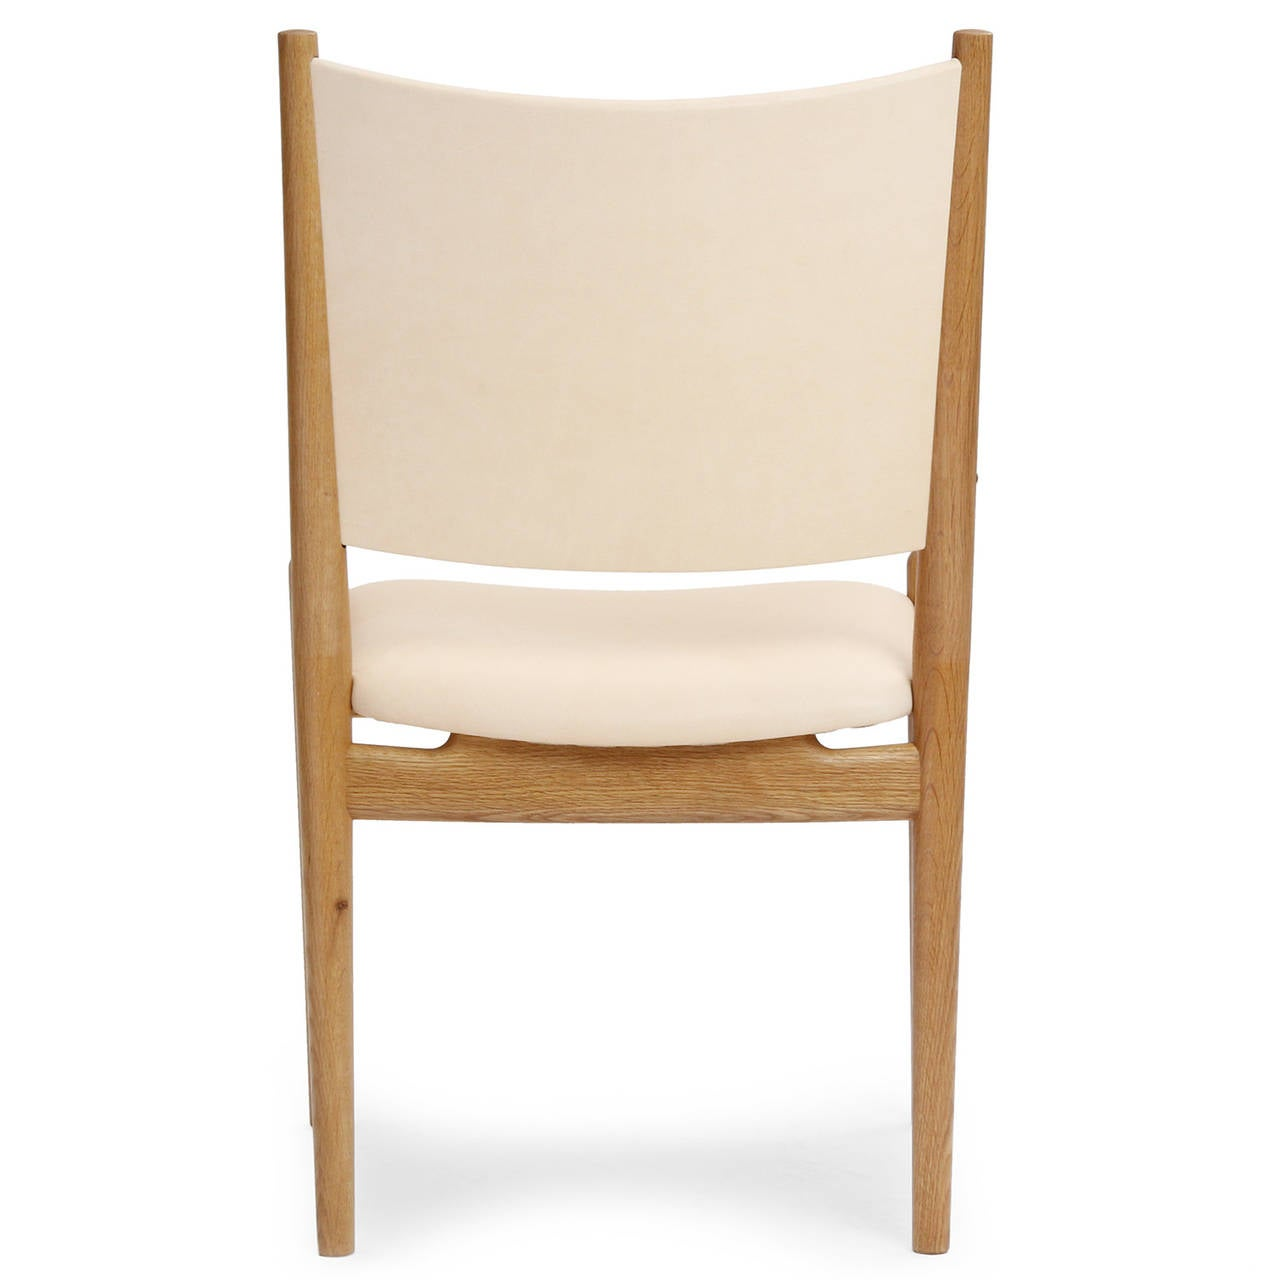 Mid-20th Century White Oak and Leather Dining Chairs by Hans Wegner For Sale